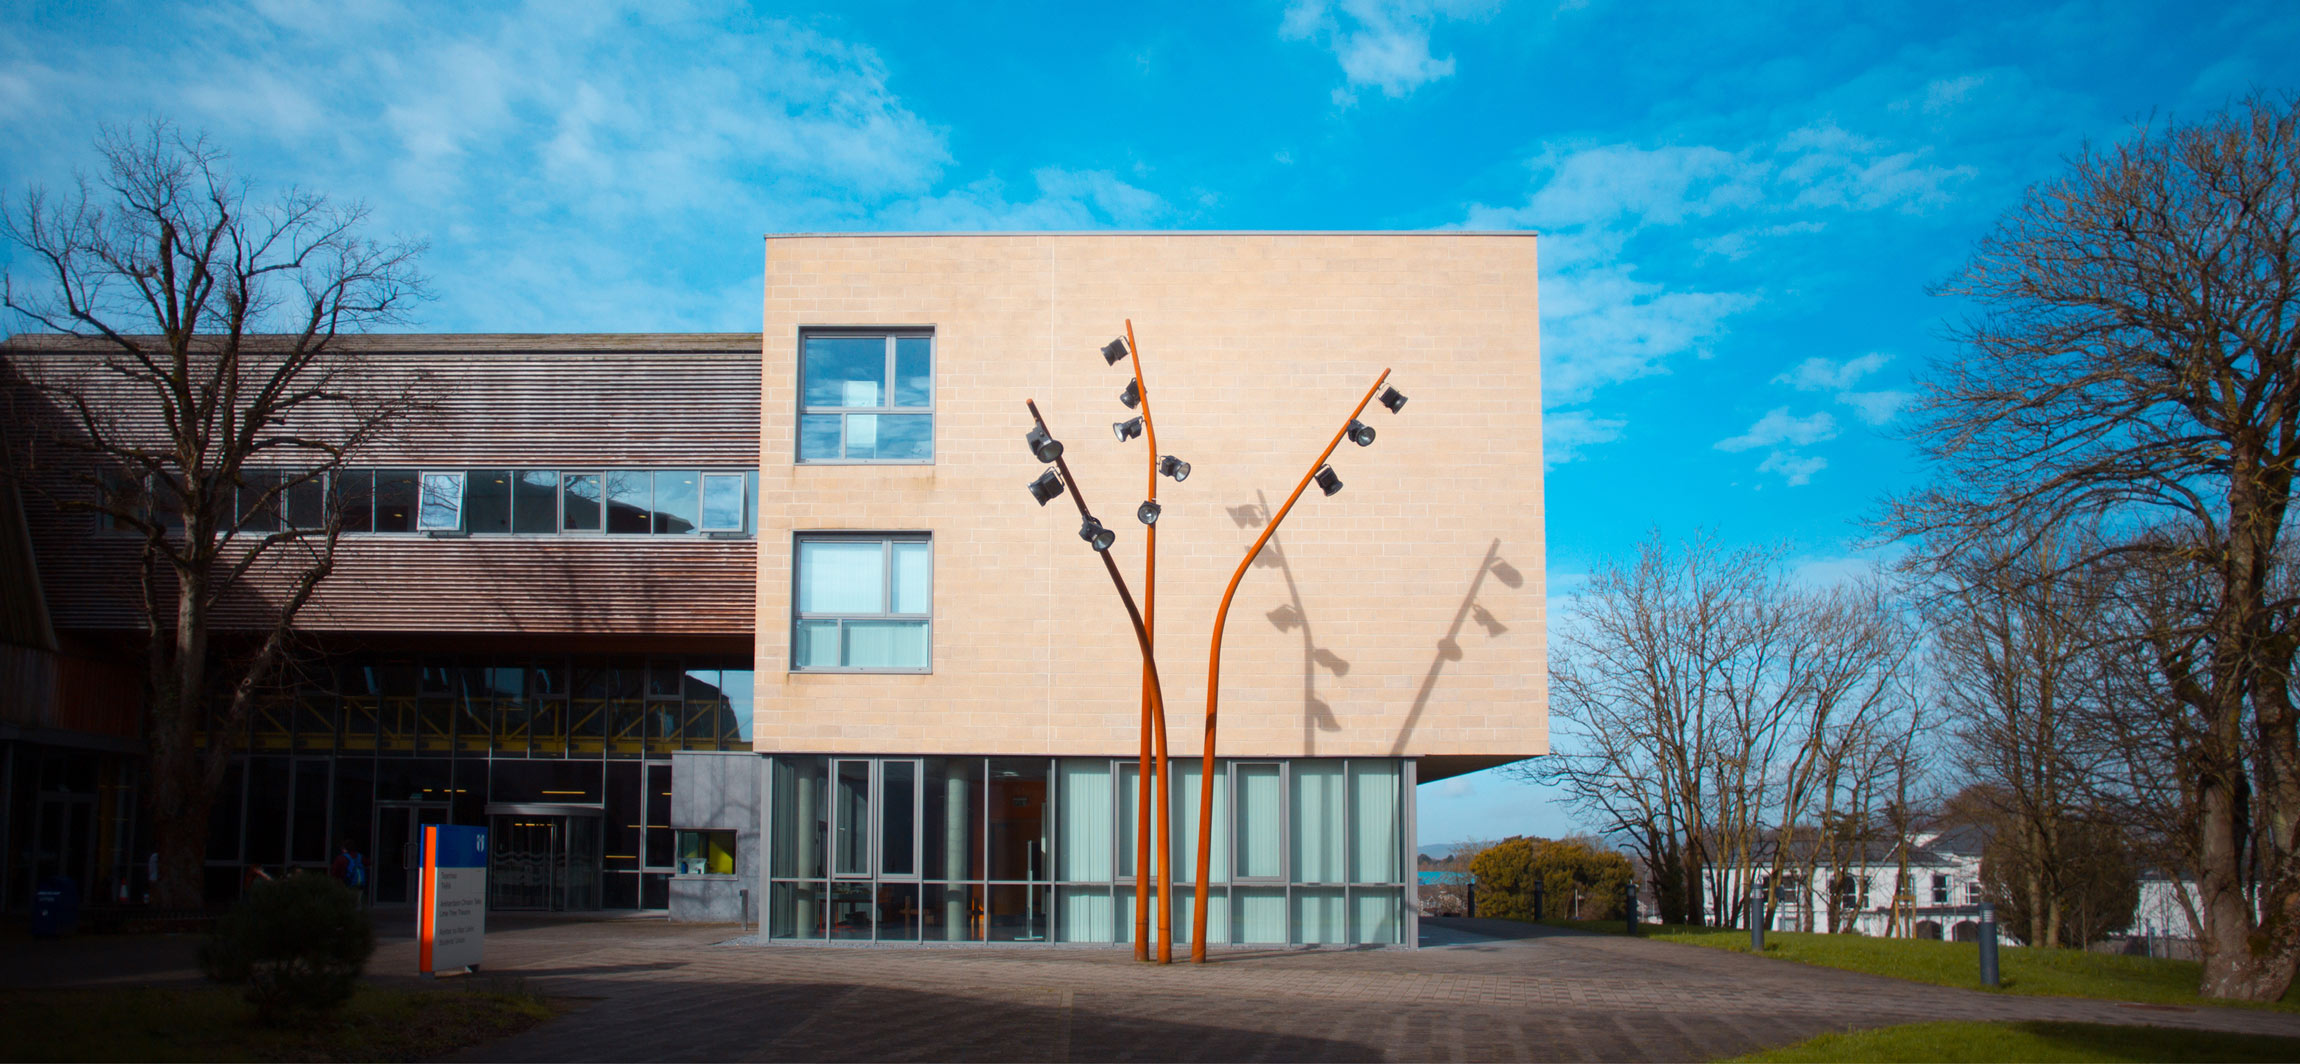 MIC video and photography production of new buildings on Limerick campus